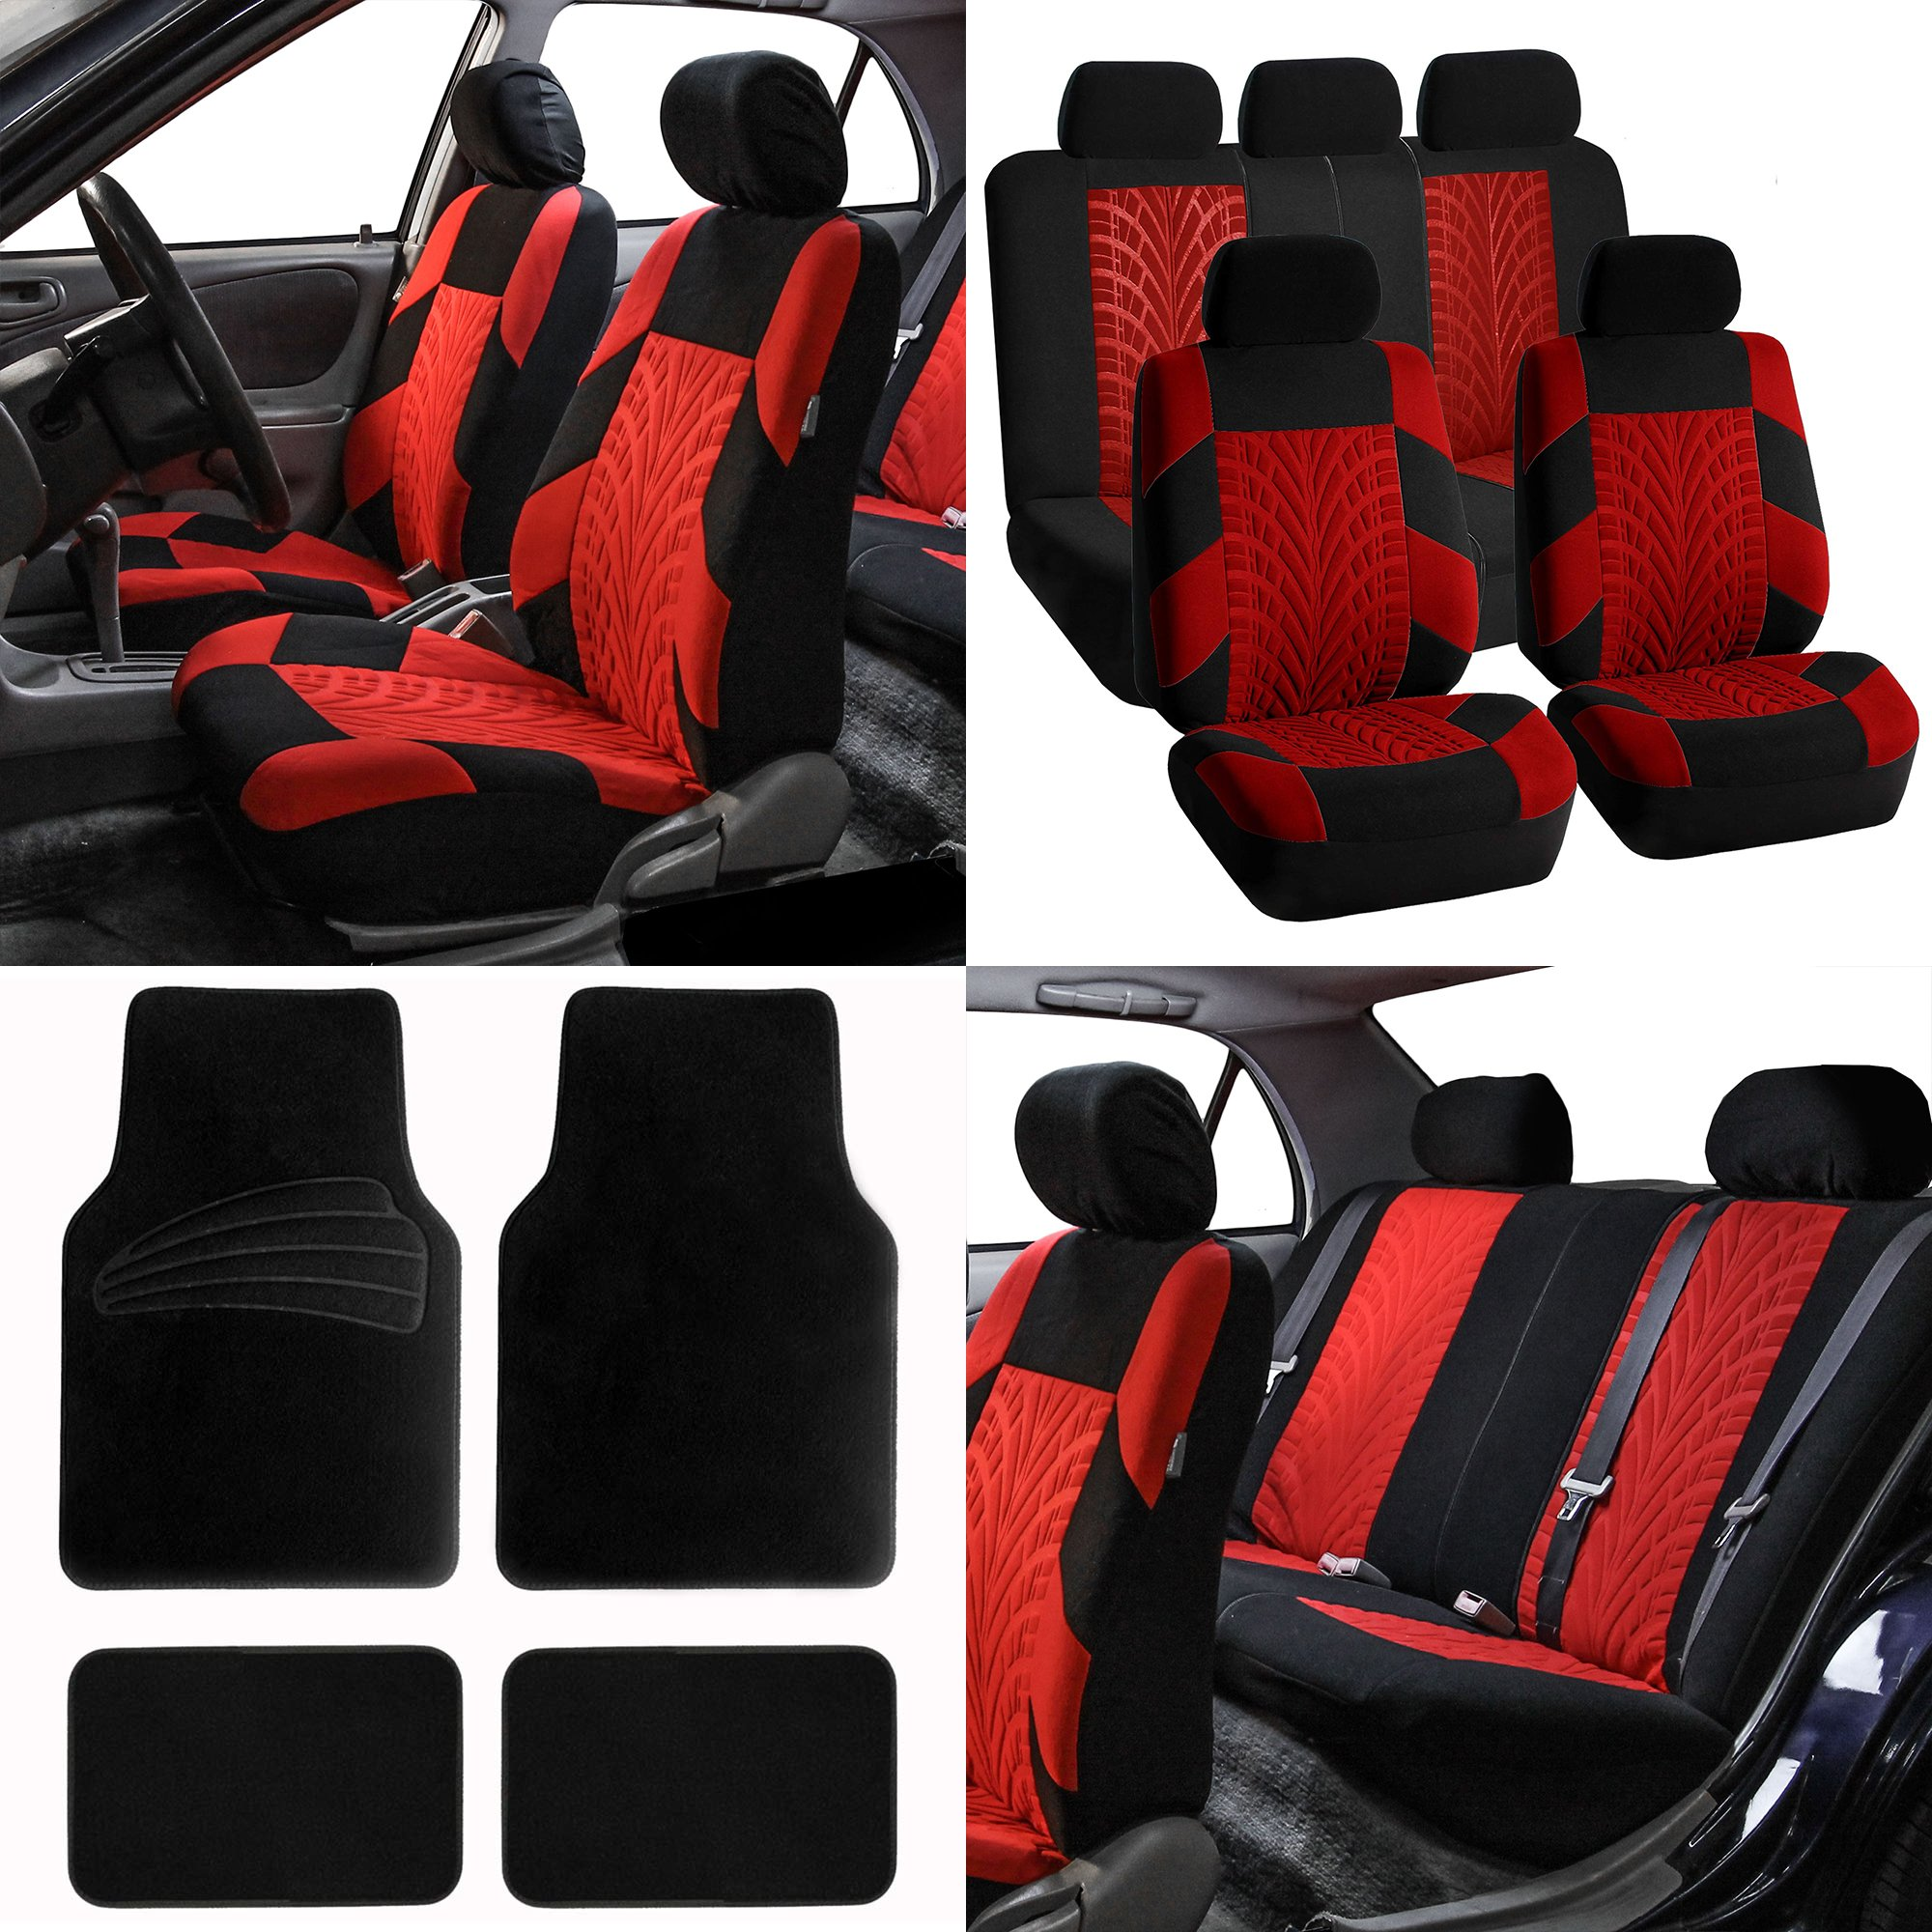 FH Group FB071115 Complete Set Travel Master Seat Covers Airbag Ready & Rear Split, Red/Black Color w. Premium Carpet Black Floor Mats- Fit Most Car, Truck, SUV, or Van by FH Group